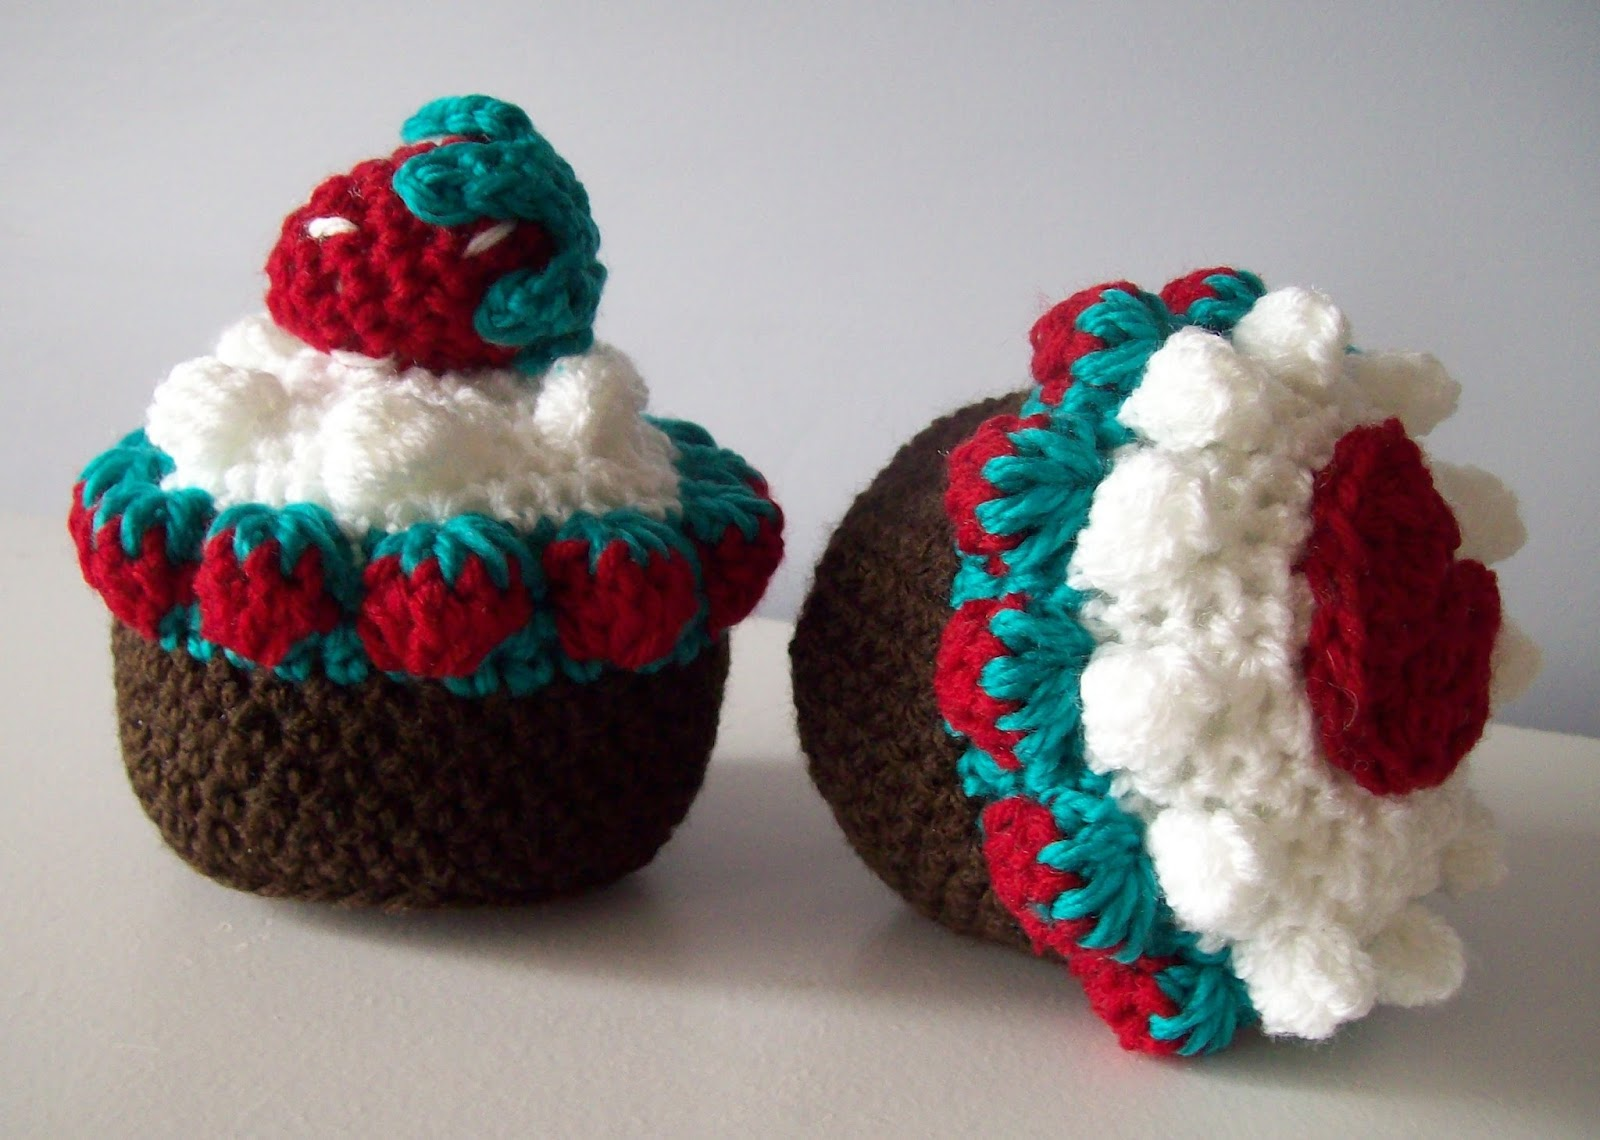 Free crochet patterns by cats rockin crochet strawberry fields chocolate cup cake bankloansurffo Image collections